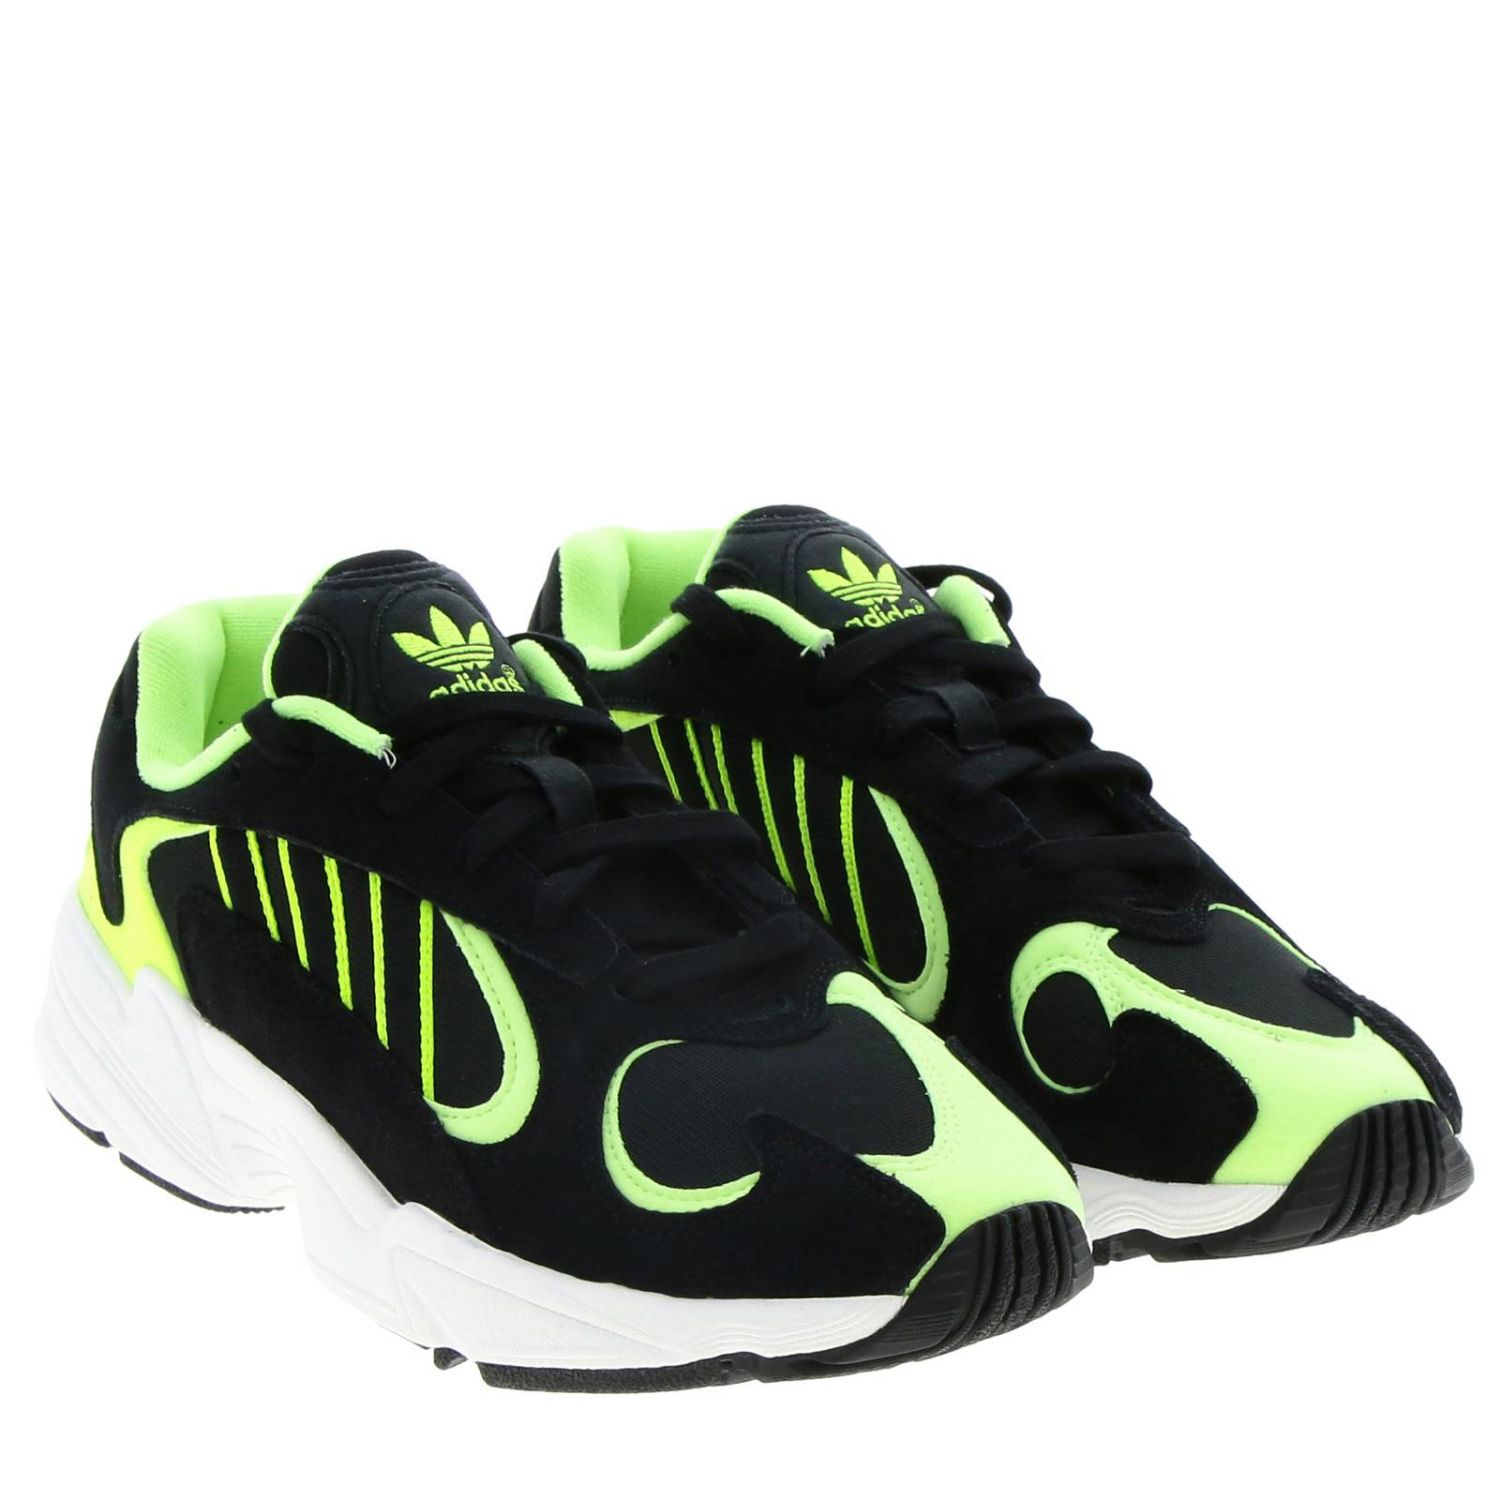 Sneakers Adidas Originals: Sneakers Yung-1 Adidas Originals in mesh fluo camoscio e rete con suola in gomma nero 2